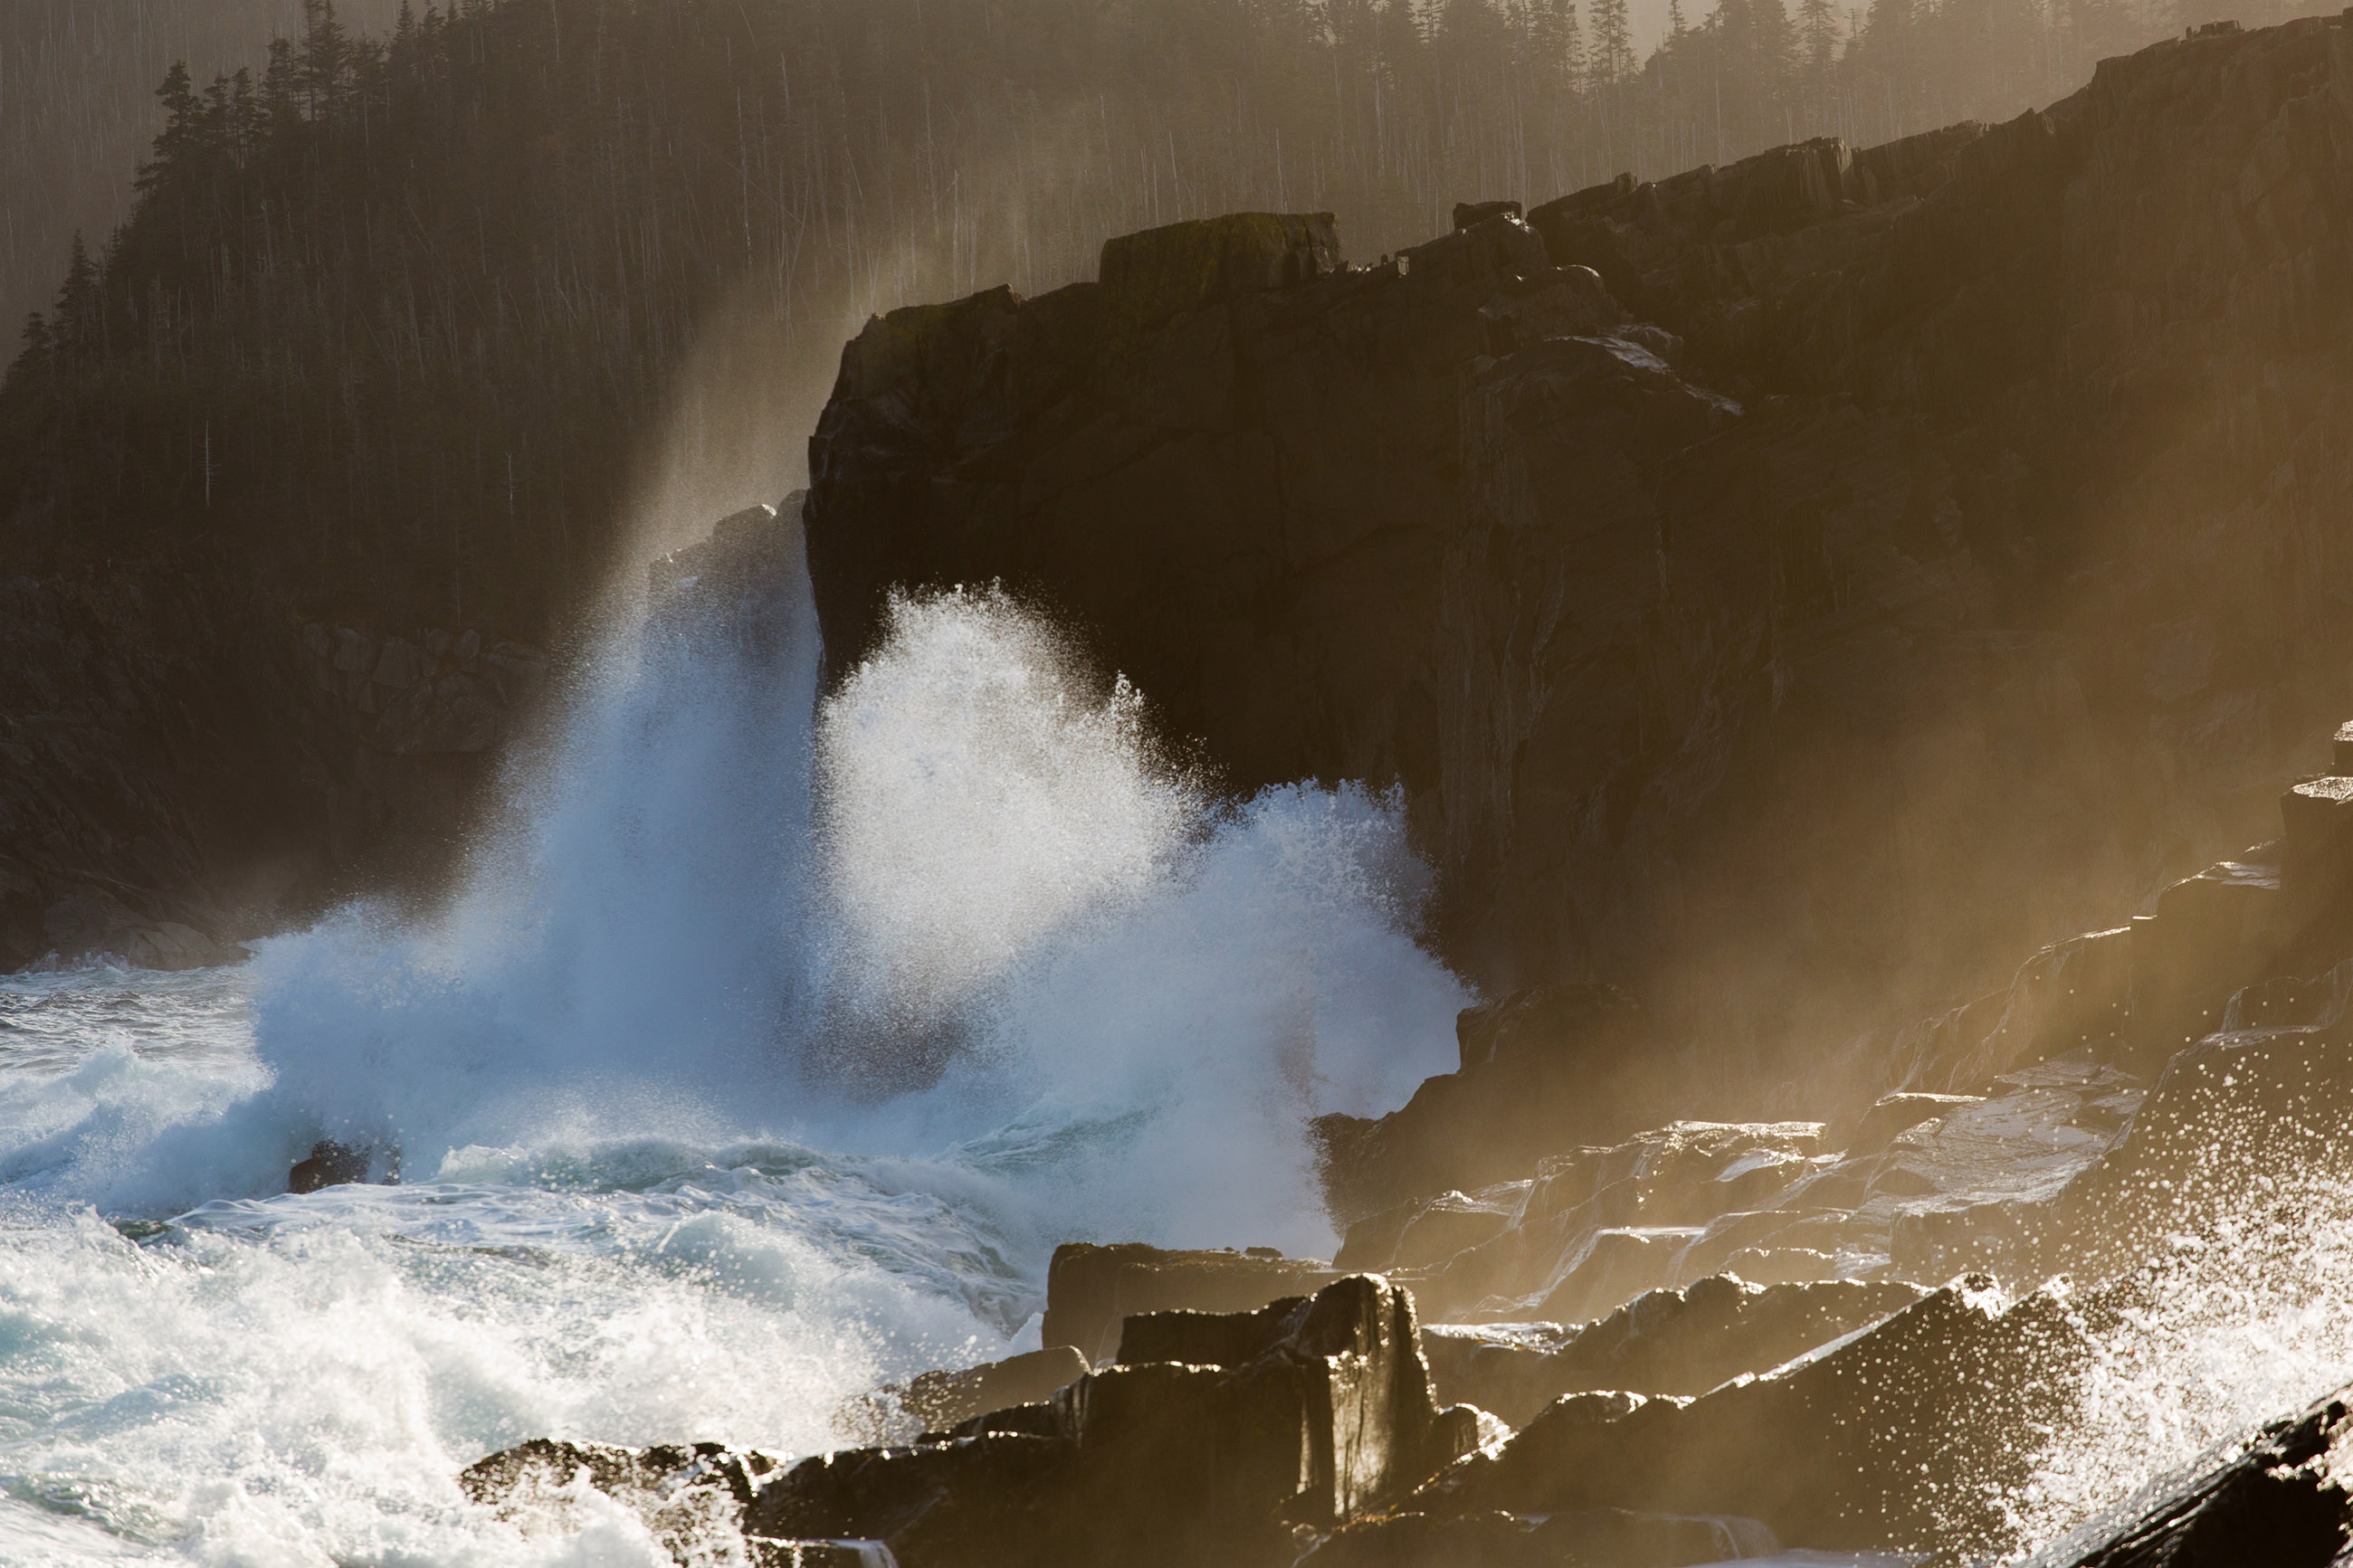 Large waves crashing on shoreline, Wild, Speed, Power, Powerful, HQ Photo